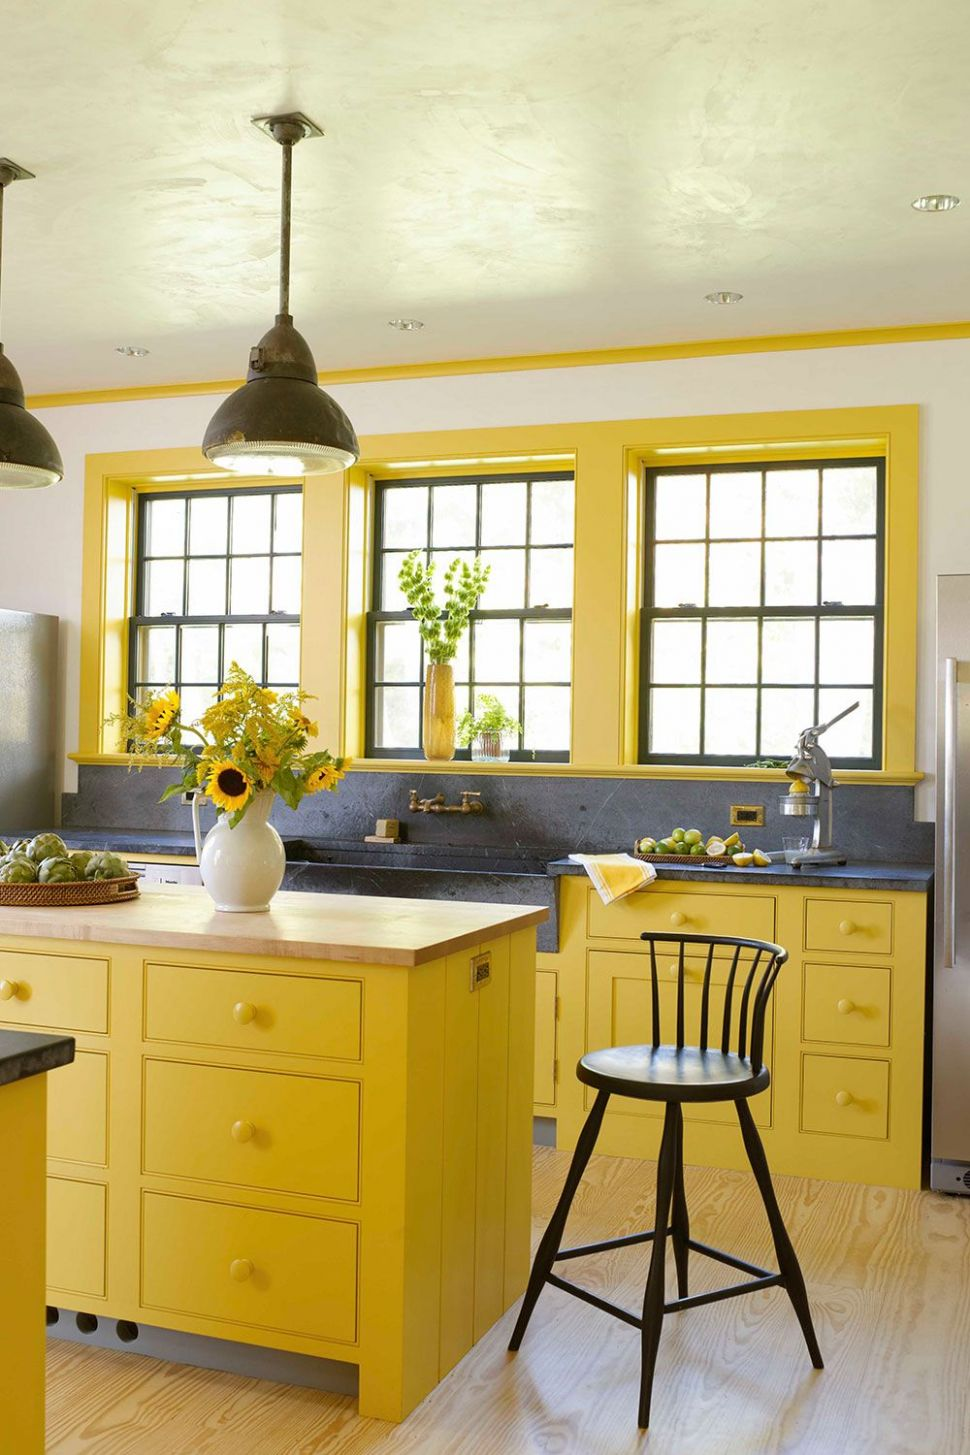 12 Yellow Kitchen Ideas - Decorating Tips for Yellow Colored Kitchens